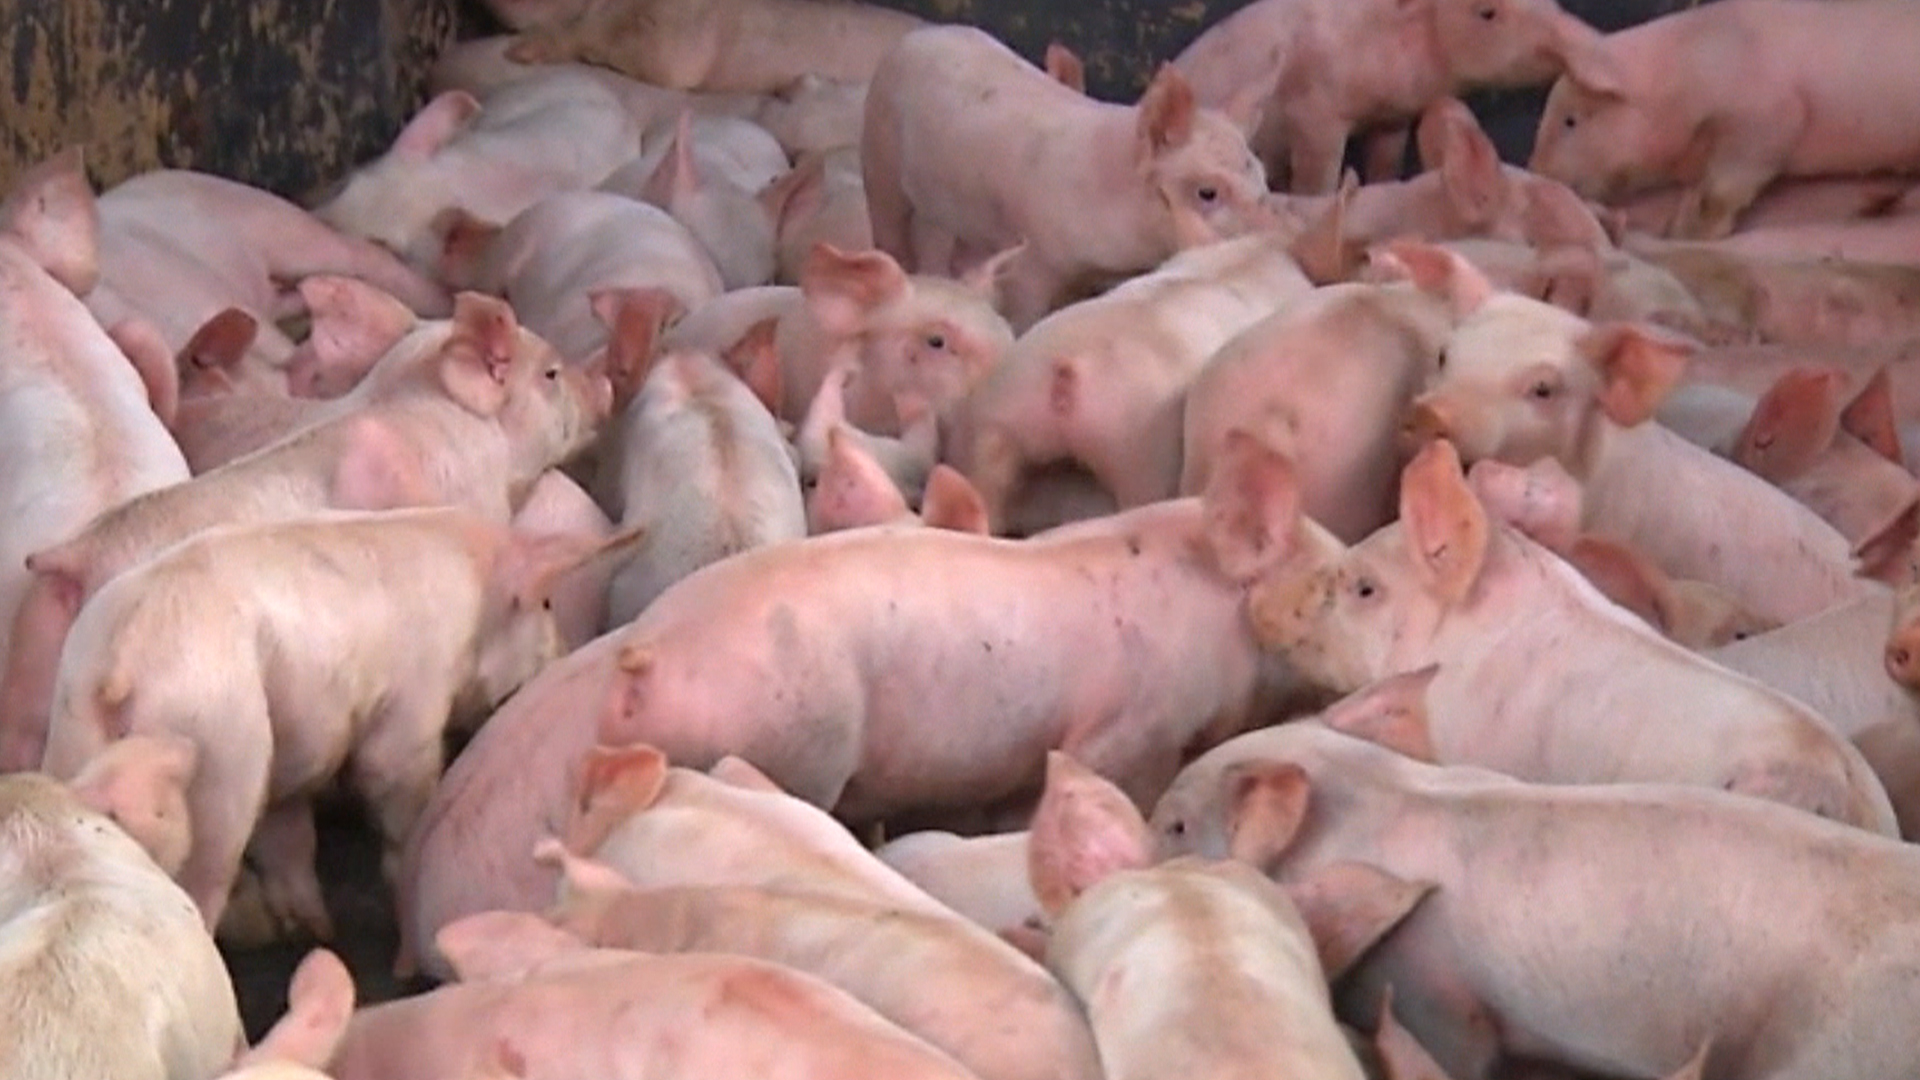 wee wee wee hundreds of baby pigs loose in ohio